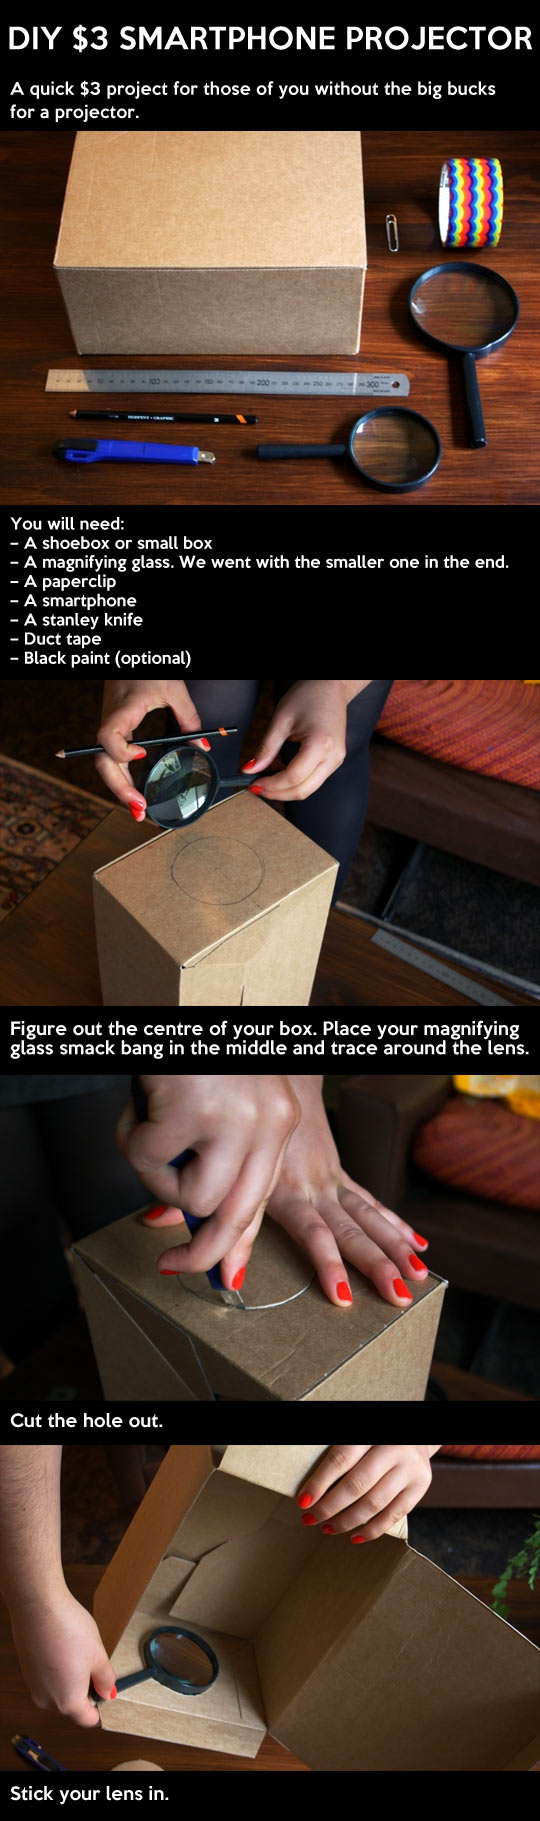 cool-smartphone-projector-cheap